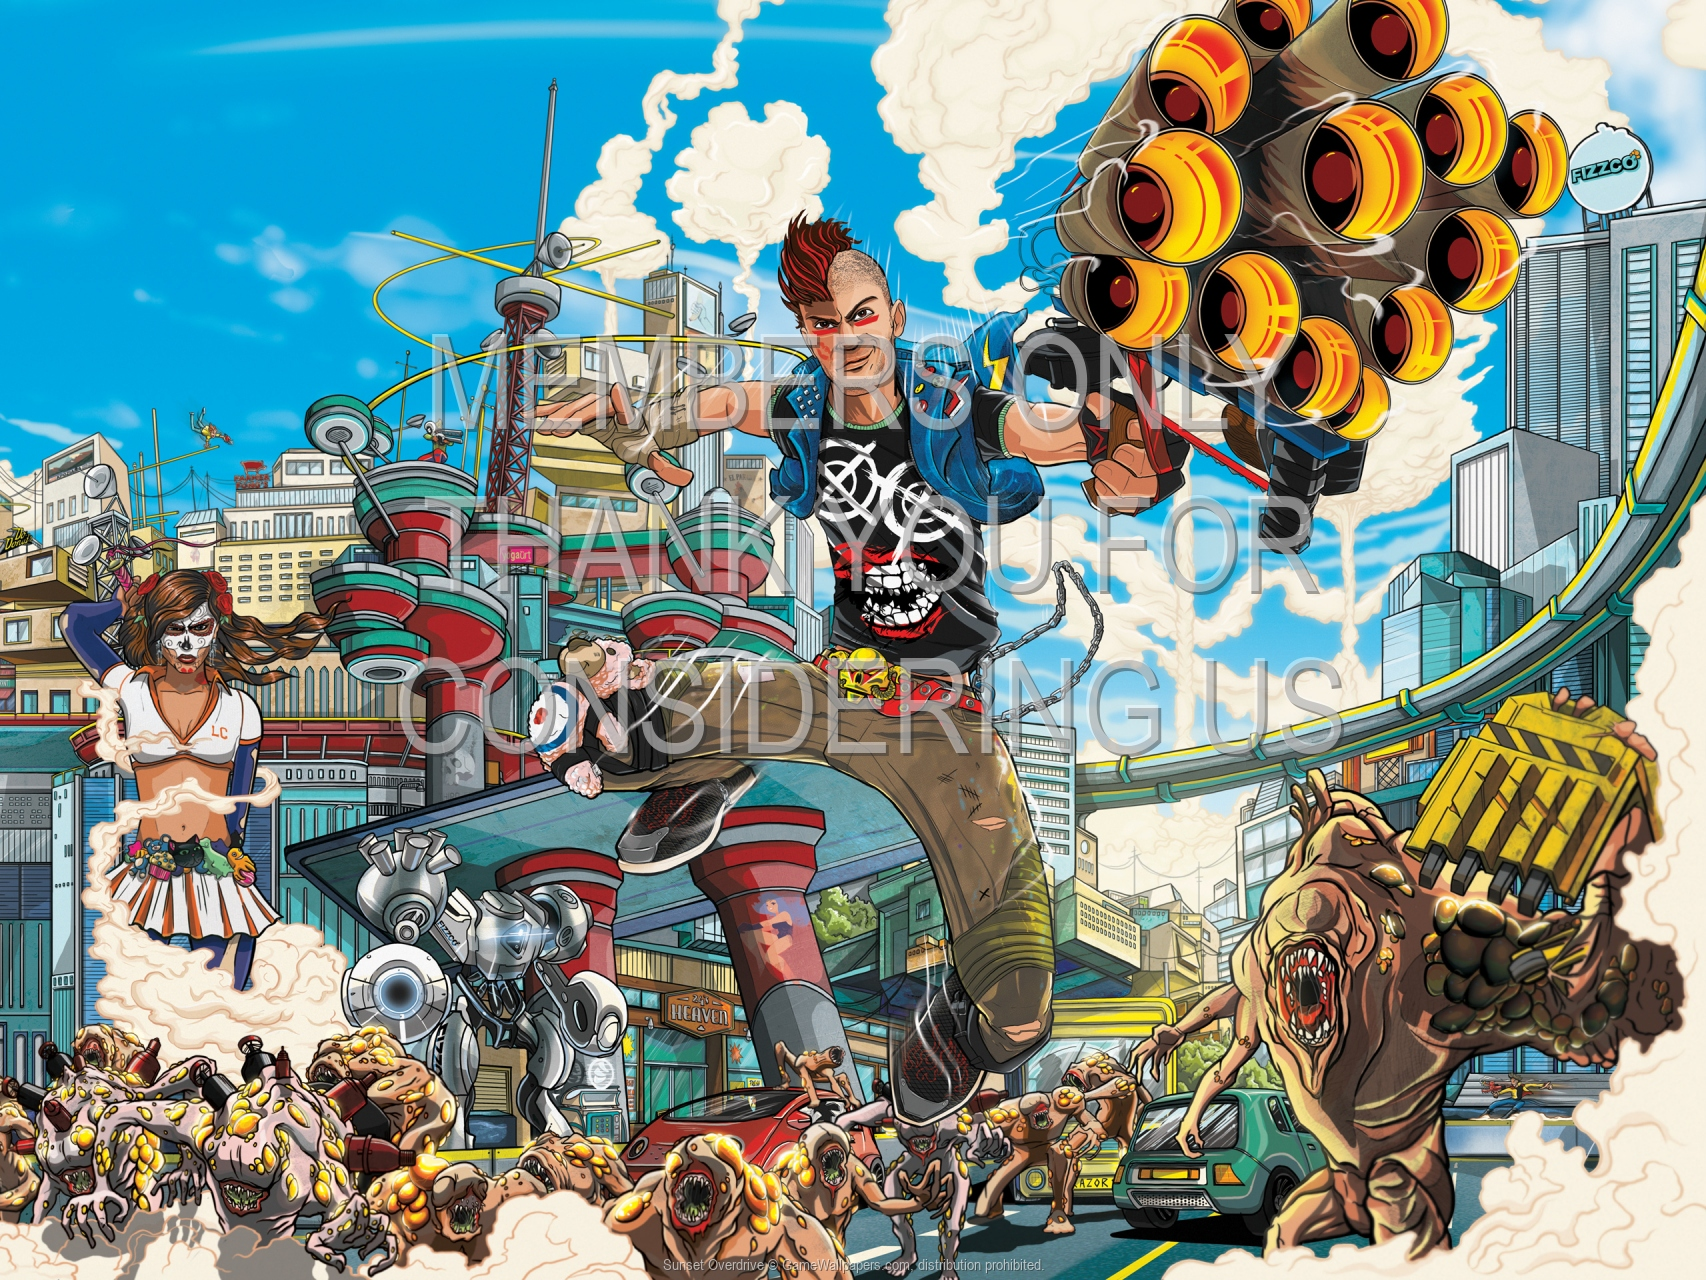 Sunset Overdrive 1920x1080 Mobile wallpaper or background 01